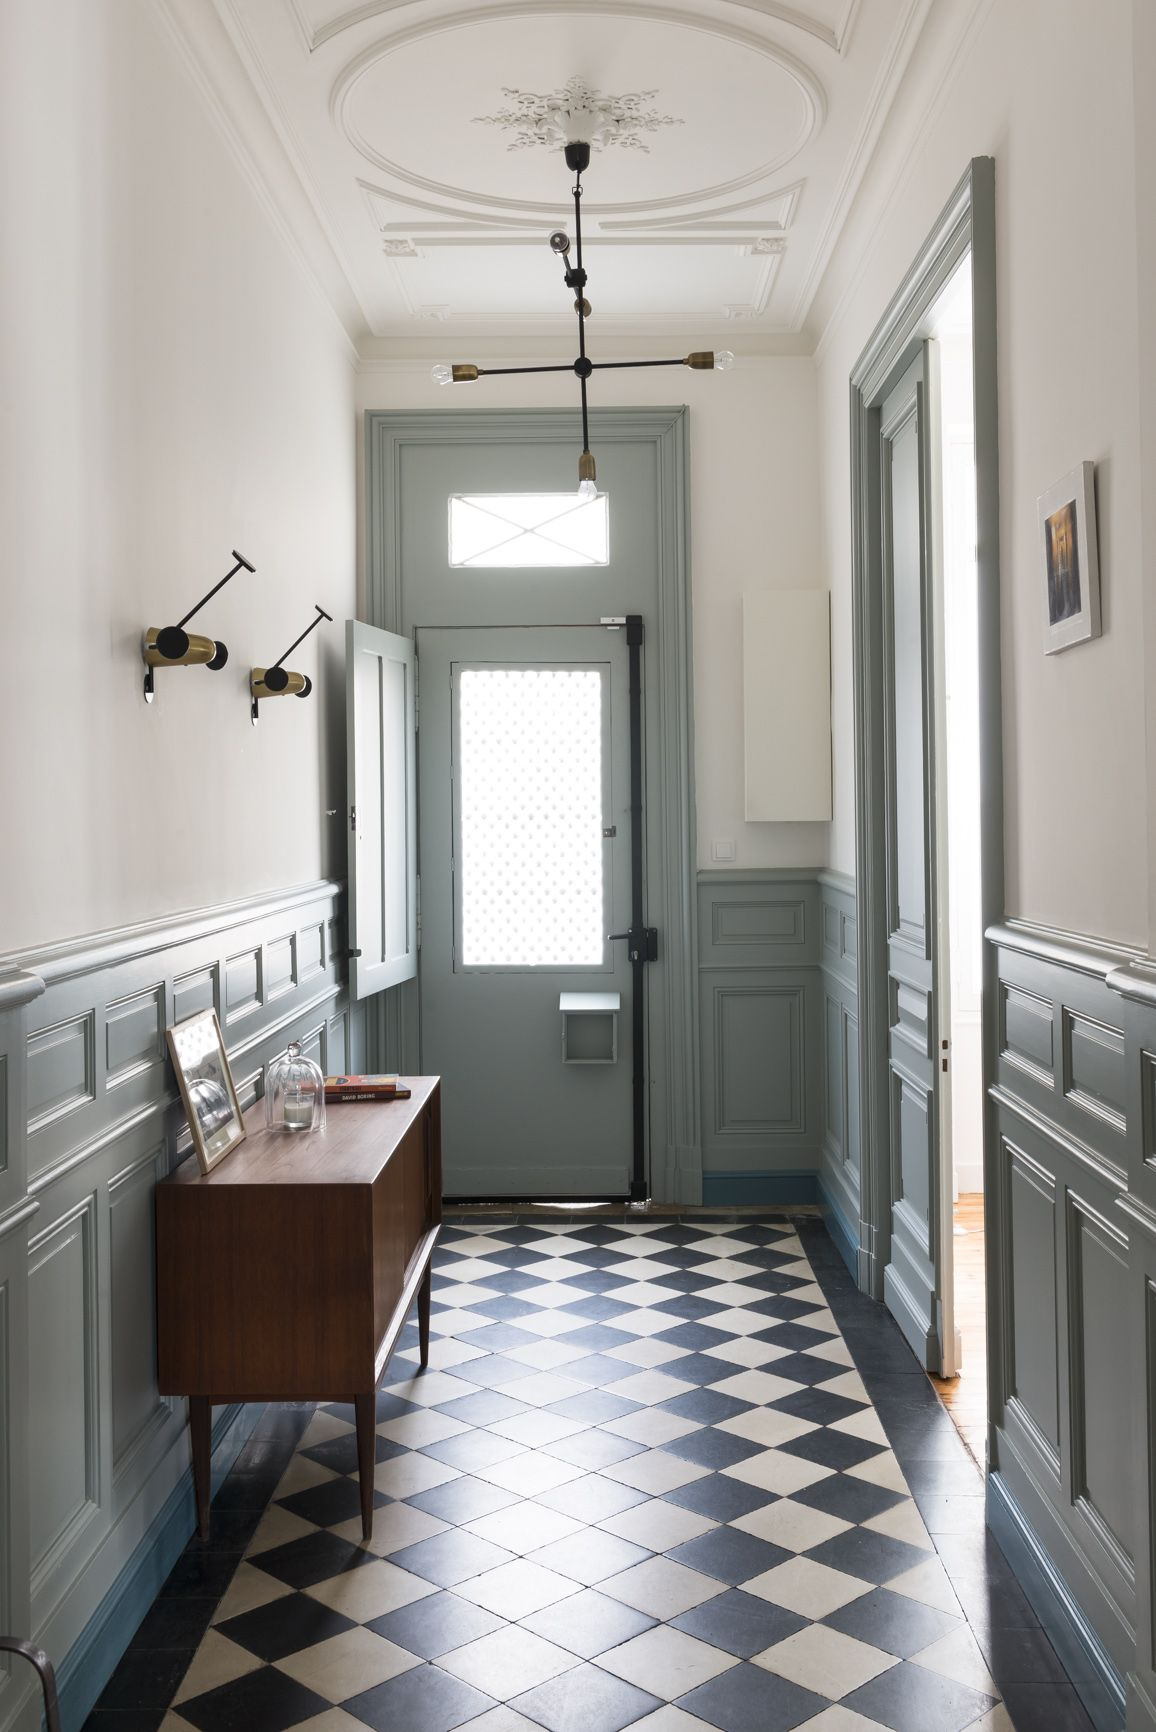 Best 25 maison bourgeoise ideas on pinterest boiseries for Carrelage ancien lille